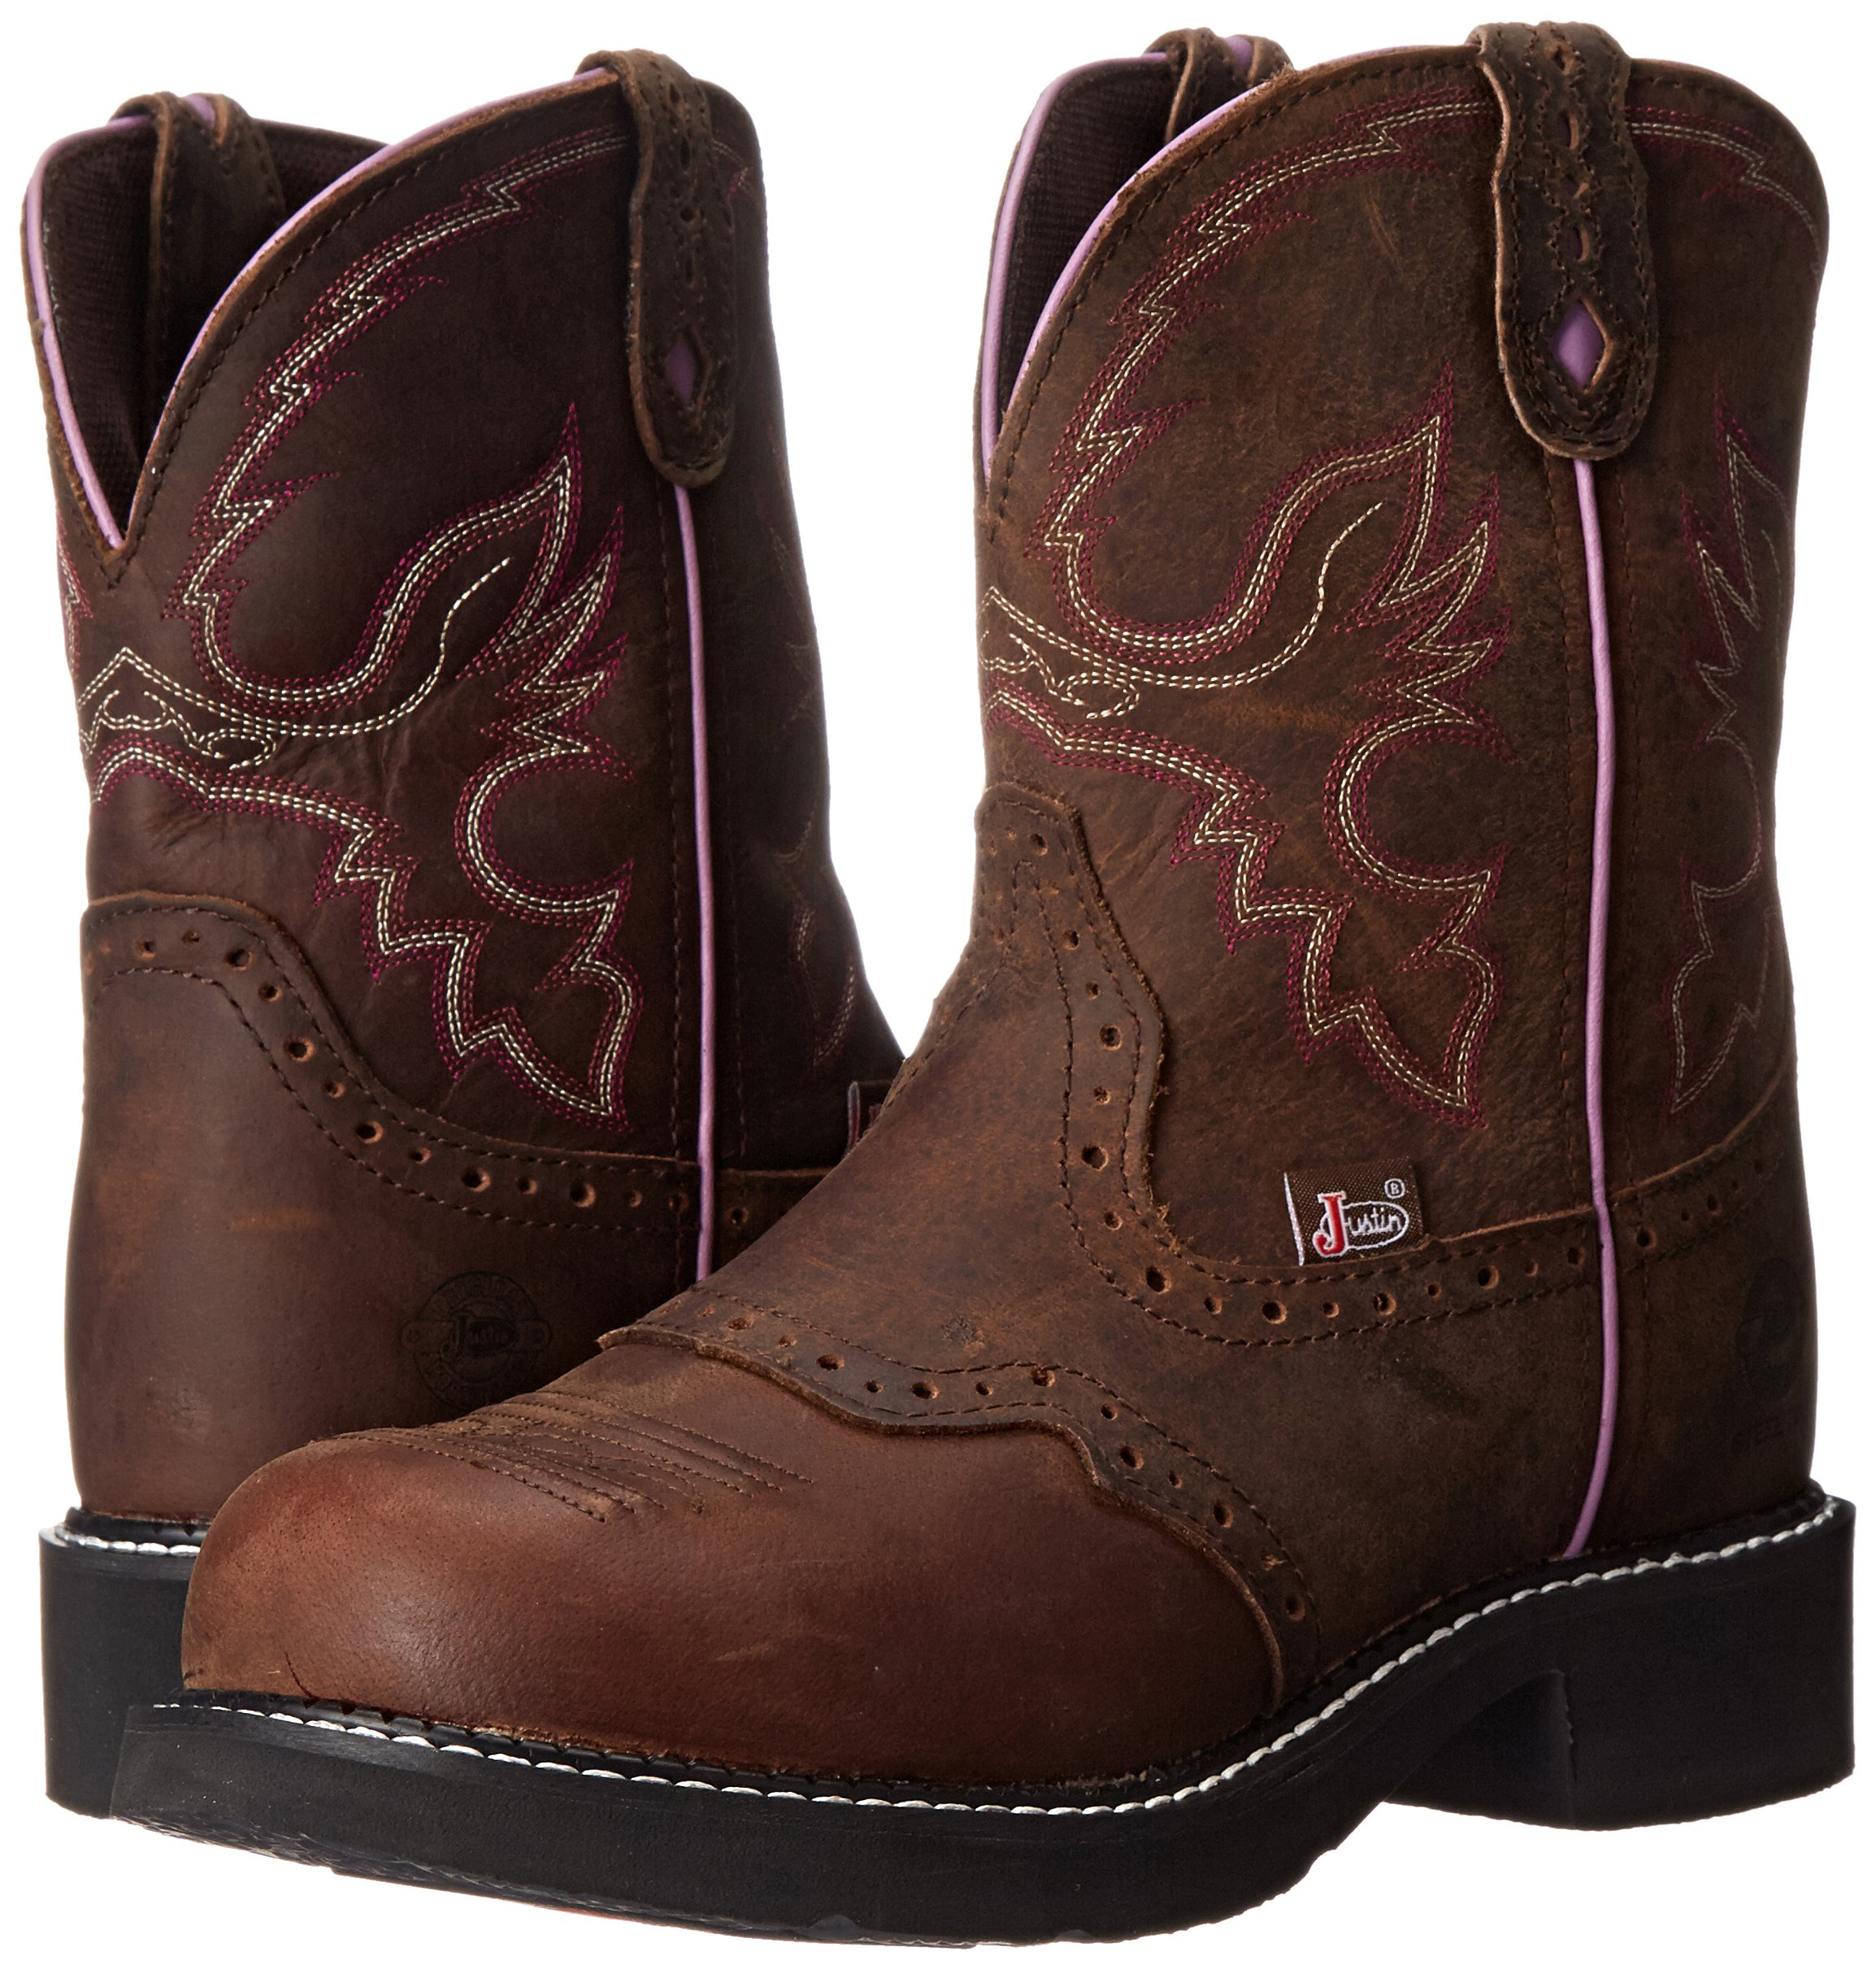 Justin Boots Women's Gypsy Collection 8'' Steel Toe,Aged Bark,6B by Justin Boots (Image #6)